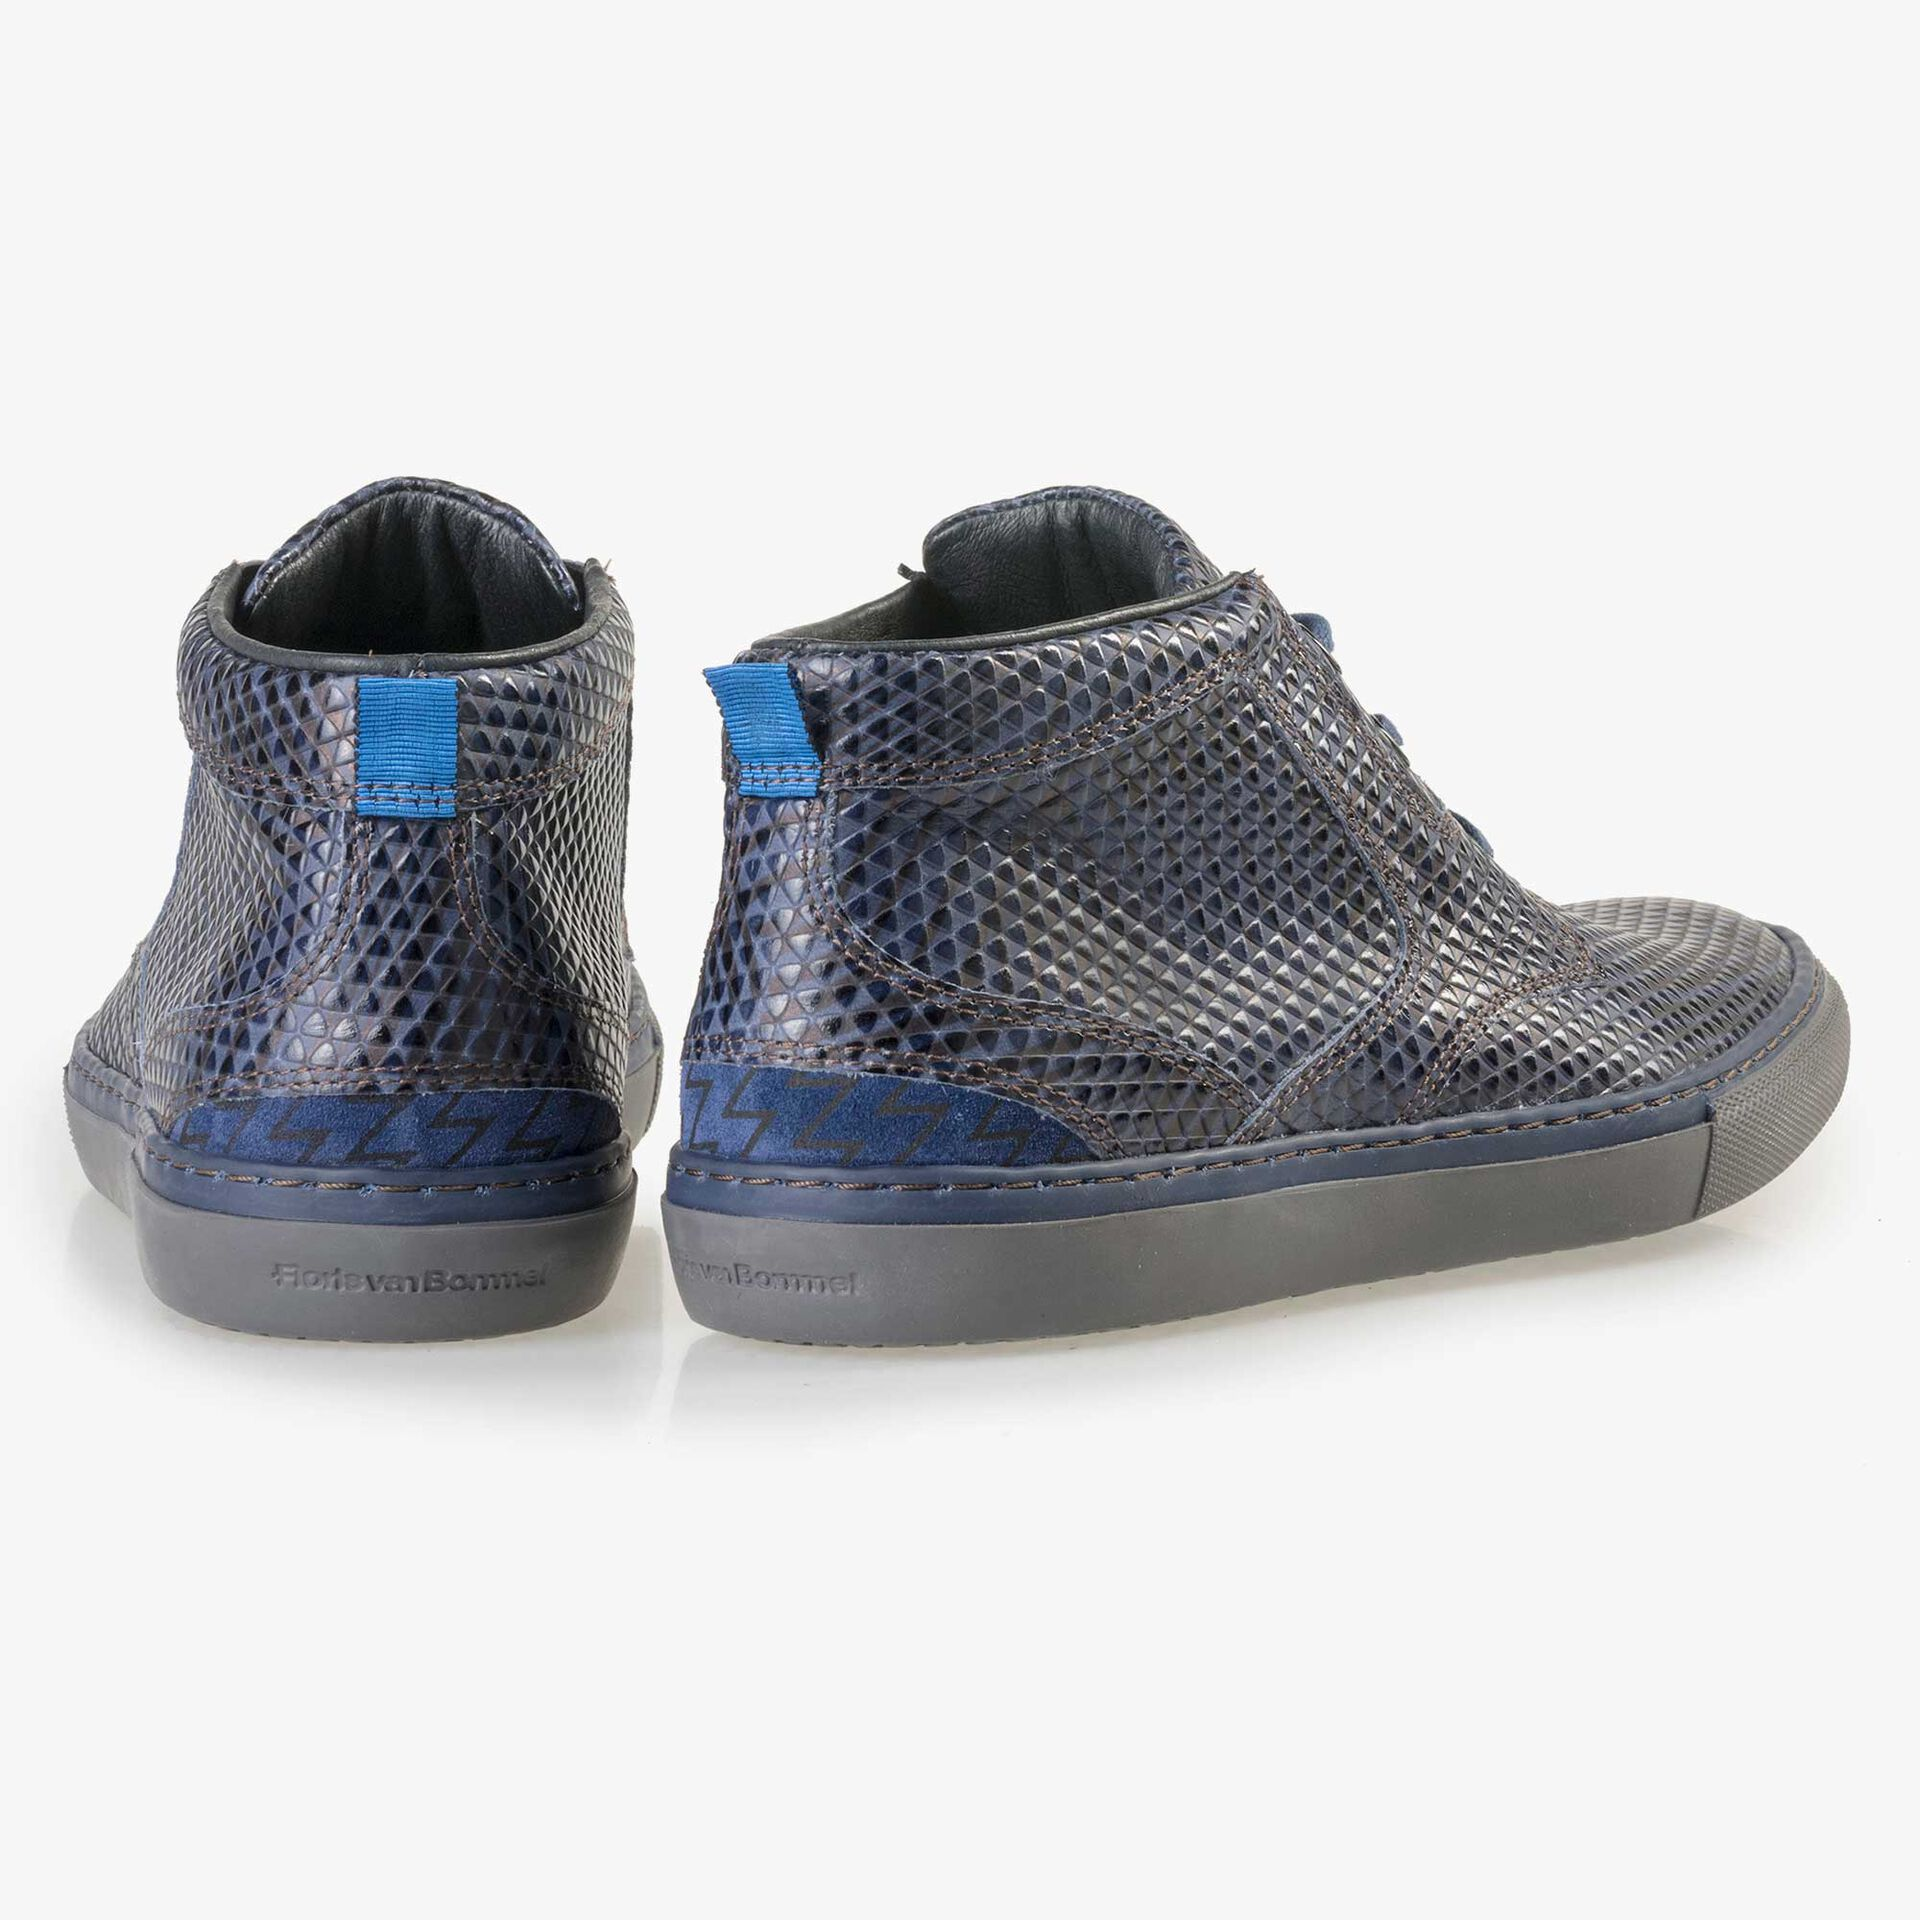 Floris van Bommel men's blue leather lace boot finished with a striped pattern